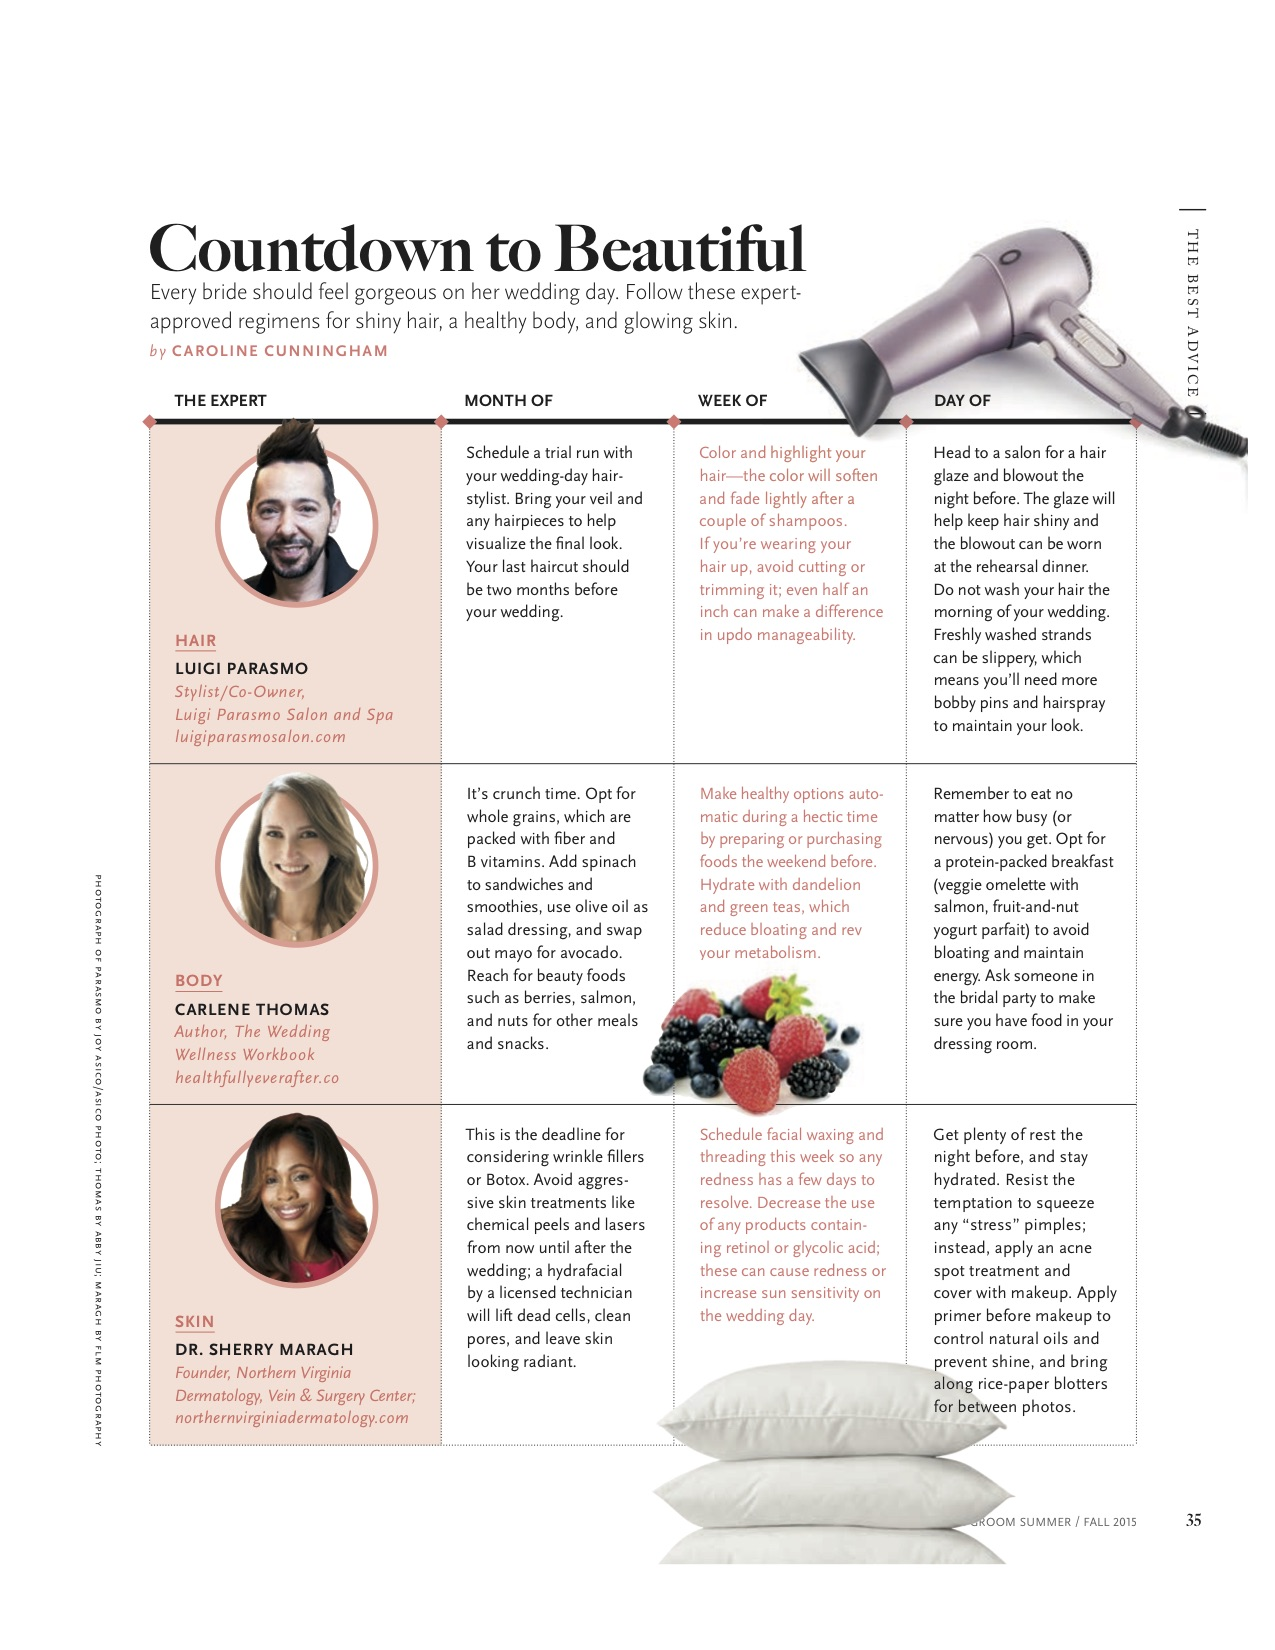 Healthfully Ever After in Washingtonian Bride and Groom Magazine  carlene thomas rdn